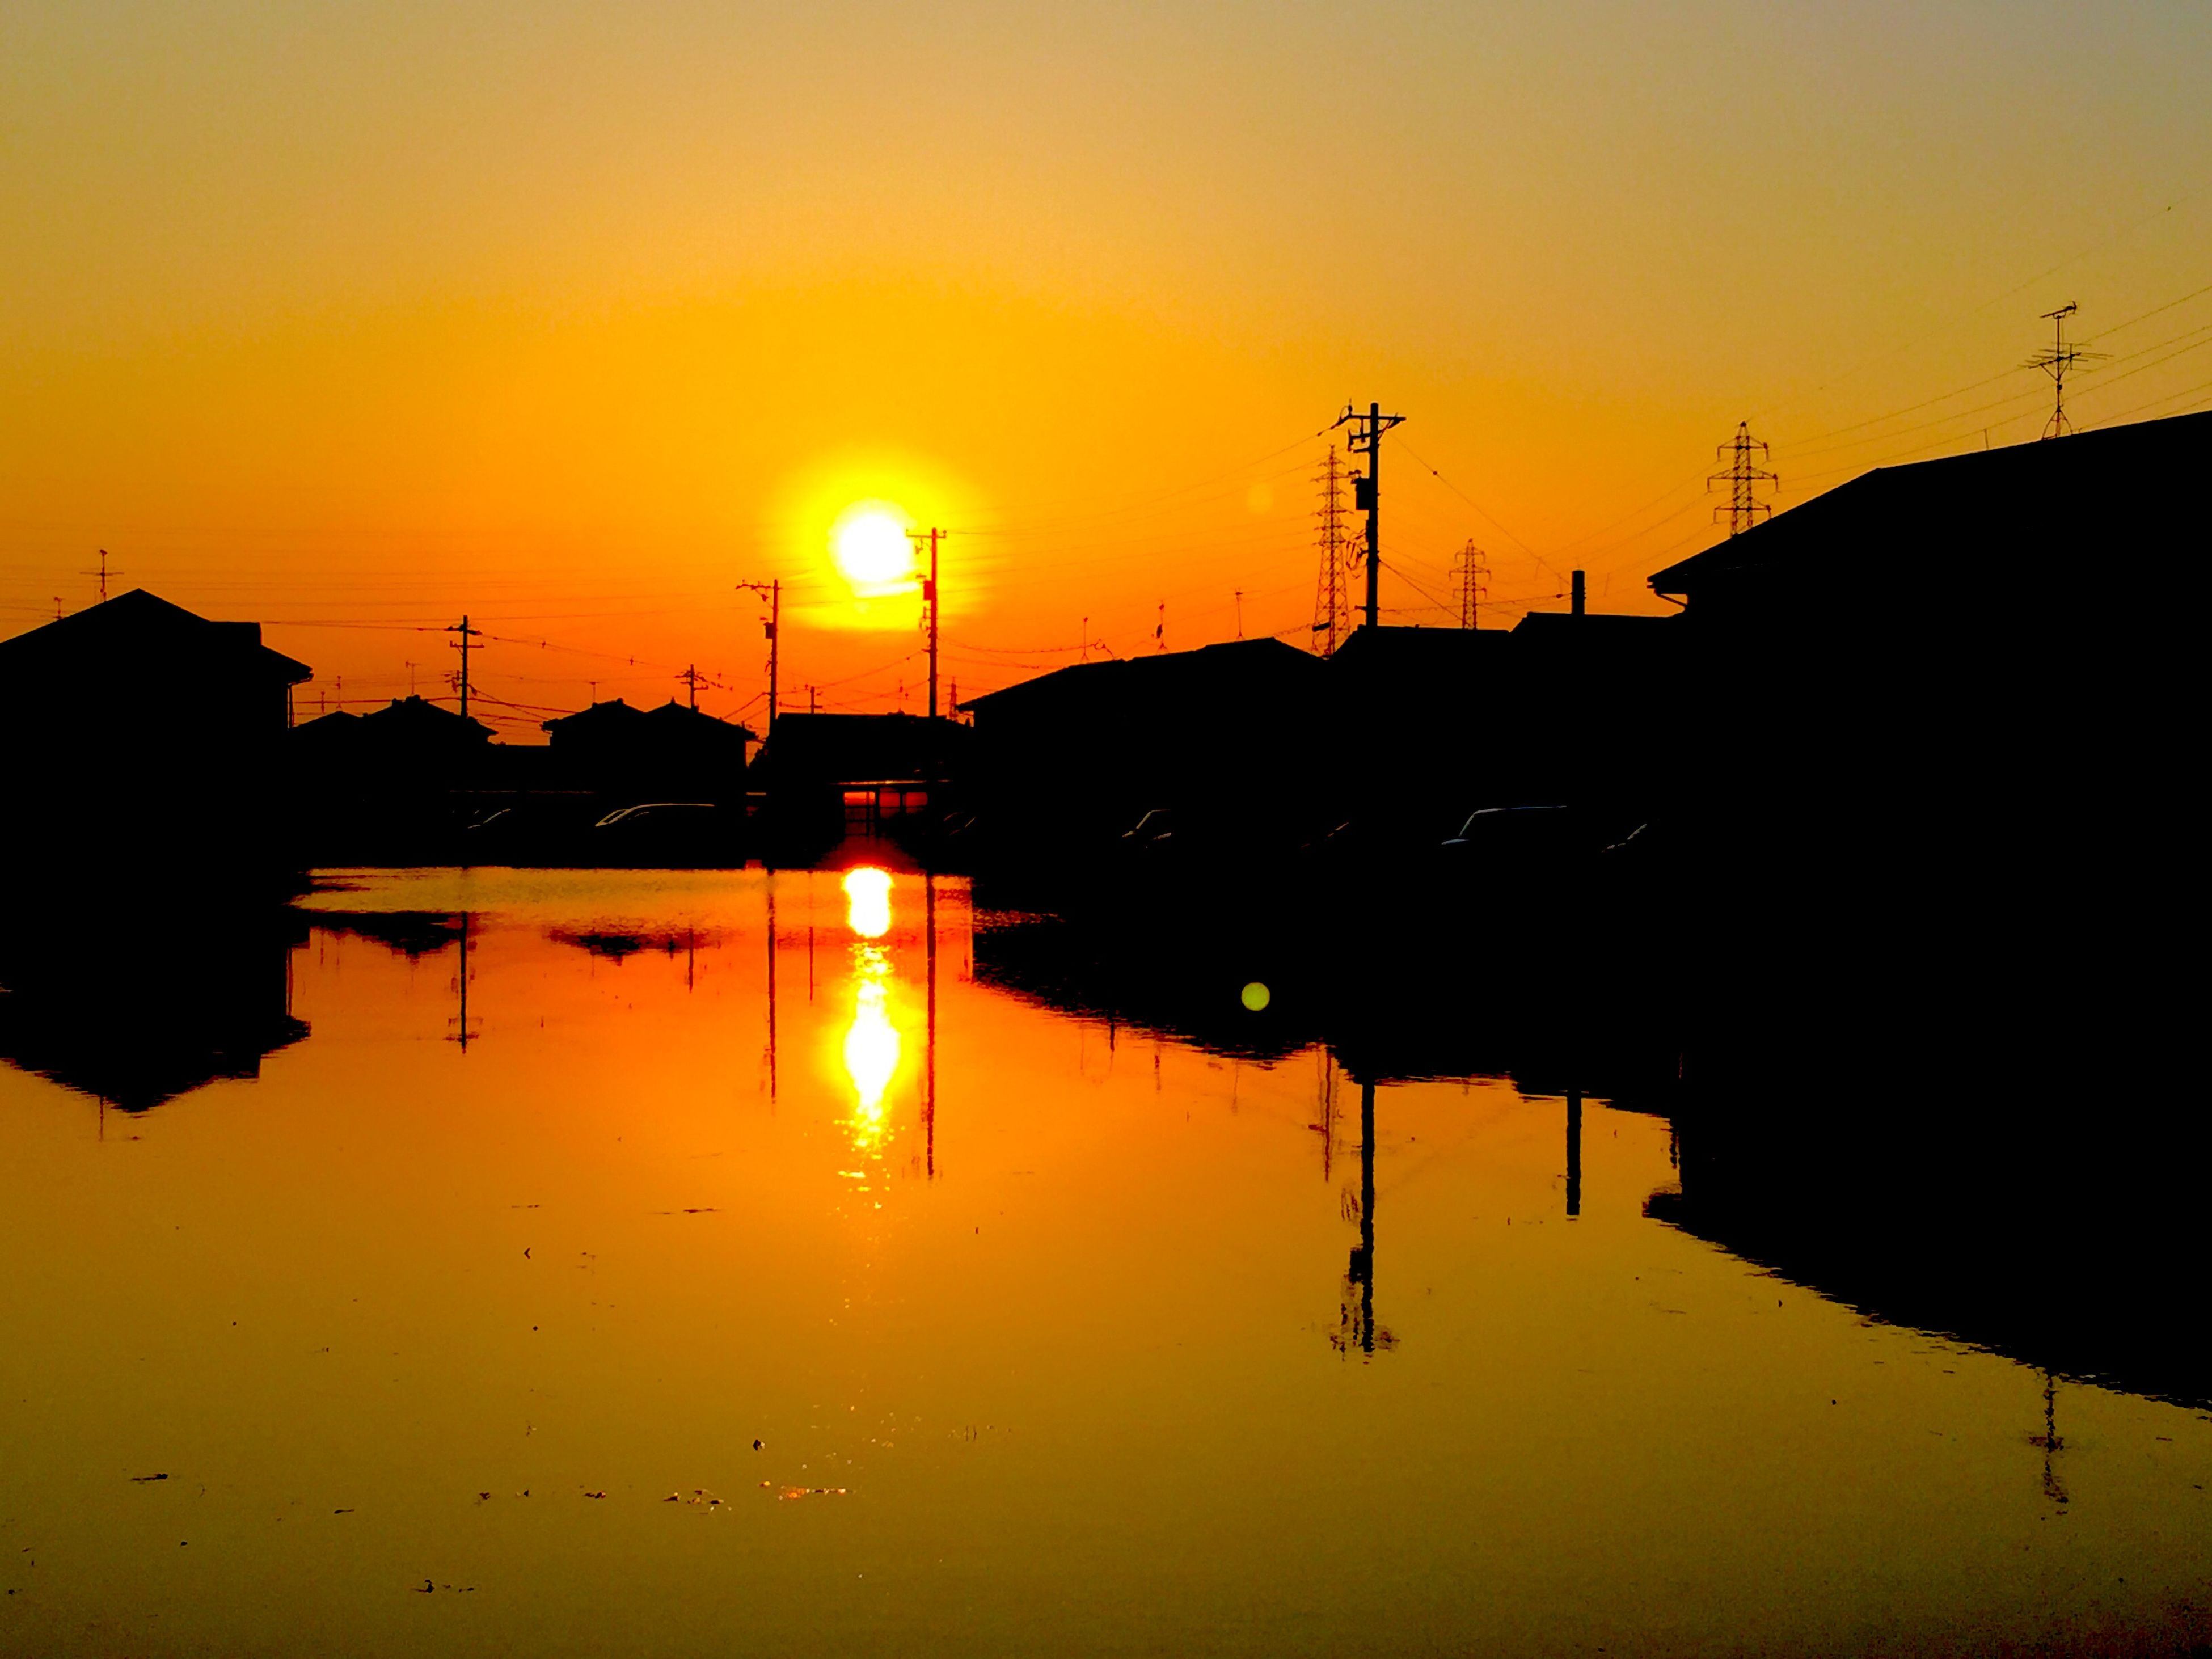 water, sunset, reflection, silhouette, calm, waterfront, tranquil scene, scenics, orange color, tranquility, lake, standing water, sun, idyllic, beauty in nature, symmetry, nature, remote, cloud, atmospheric mood, majestic, solitude, outline, sky, vibrant color, water surface, no people, reflected, bridge, sea